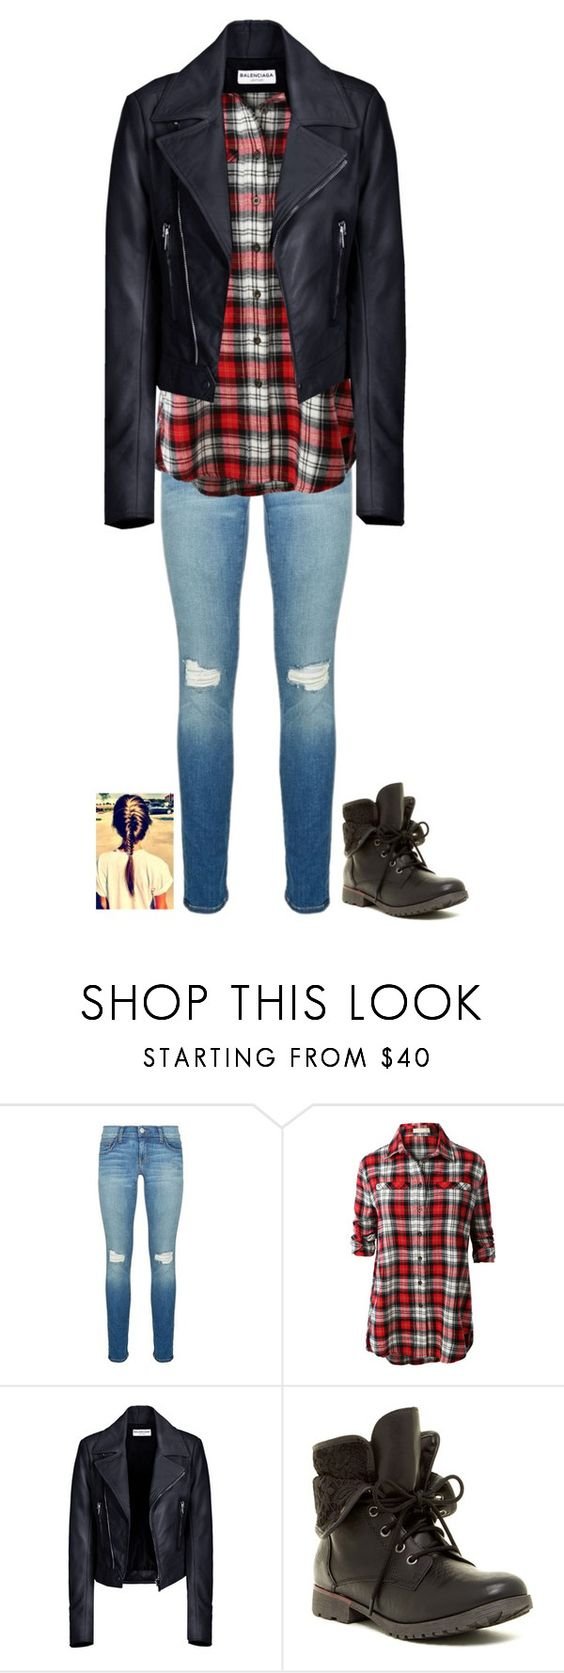 """Dress it up, or down"" by neb1211 ❤ liked on Polyvore featuring Rebecca Minkoff, LE3NO, Balenciaga and Rock & Candy"